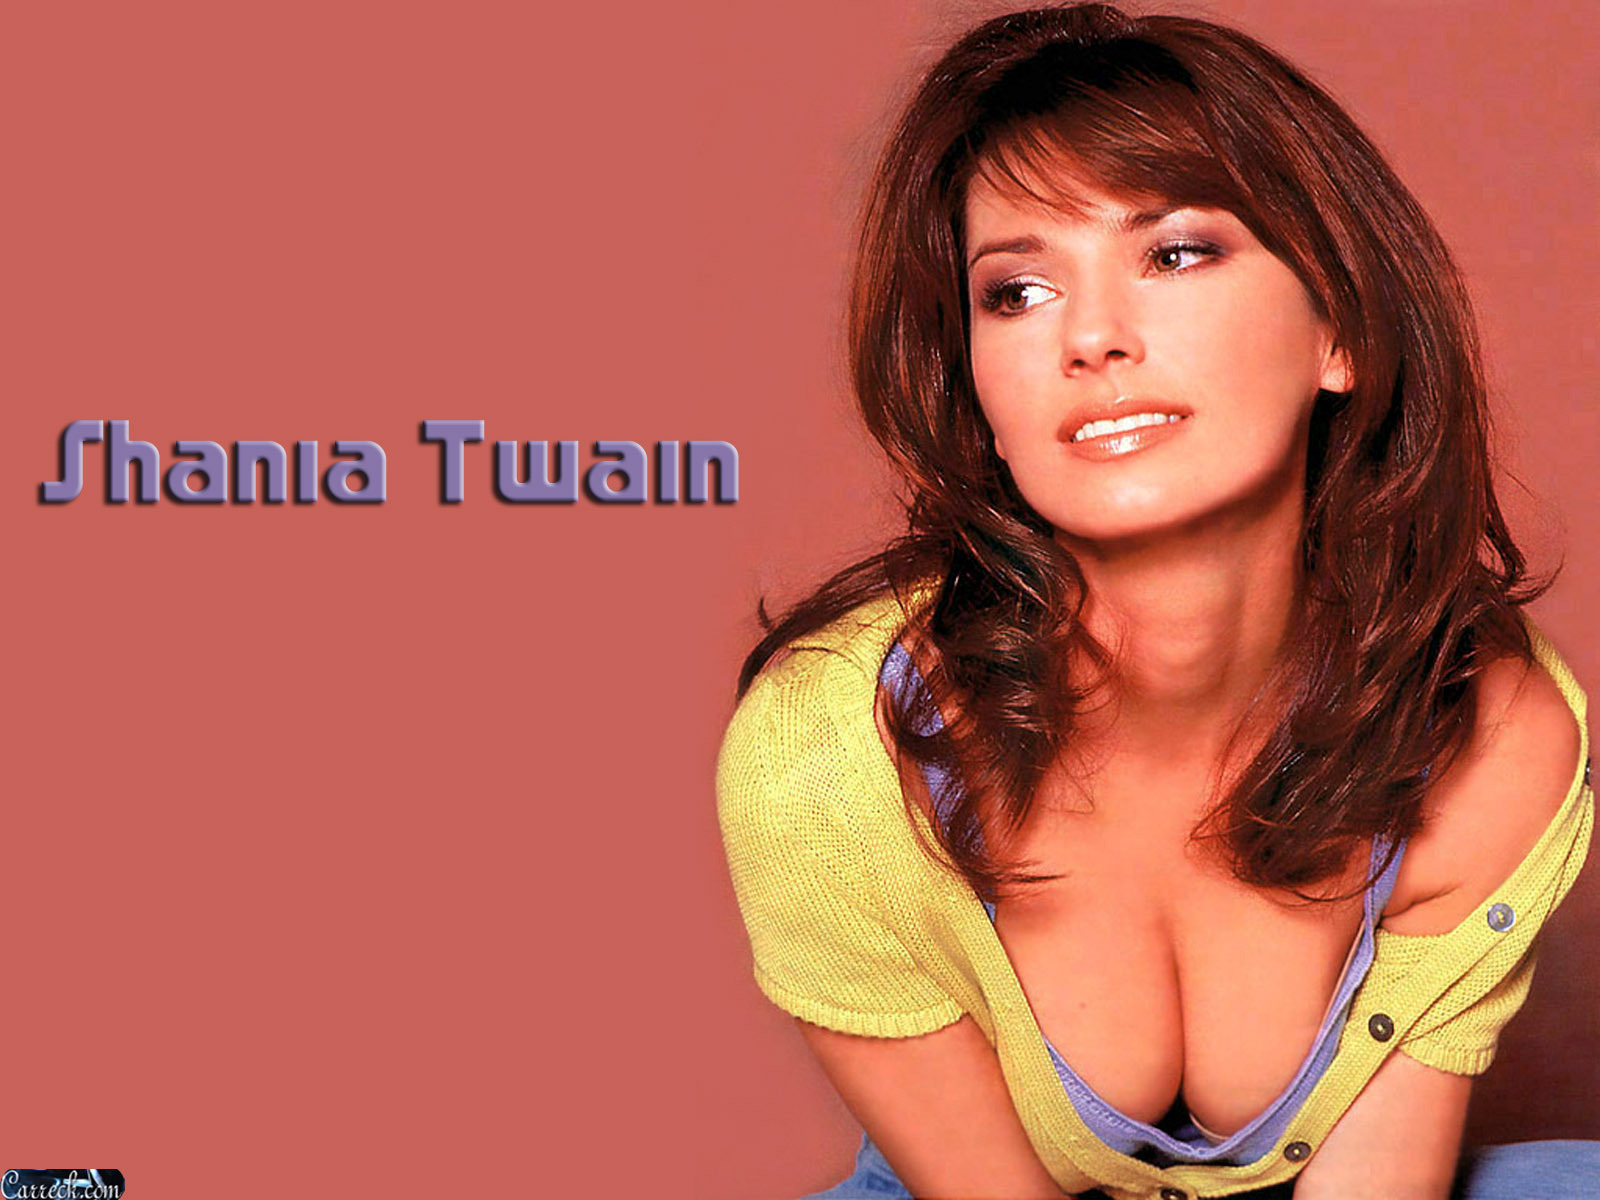 Shania Twain images Shania Twain HD wallpaper and background photos 1600x1200